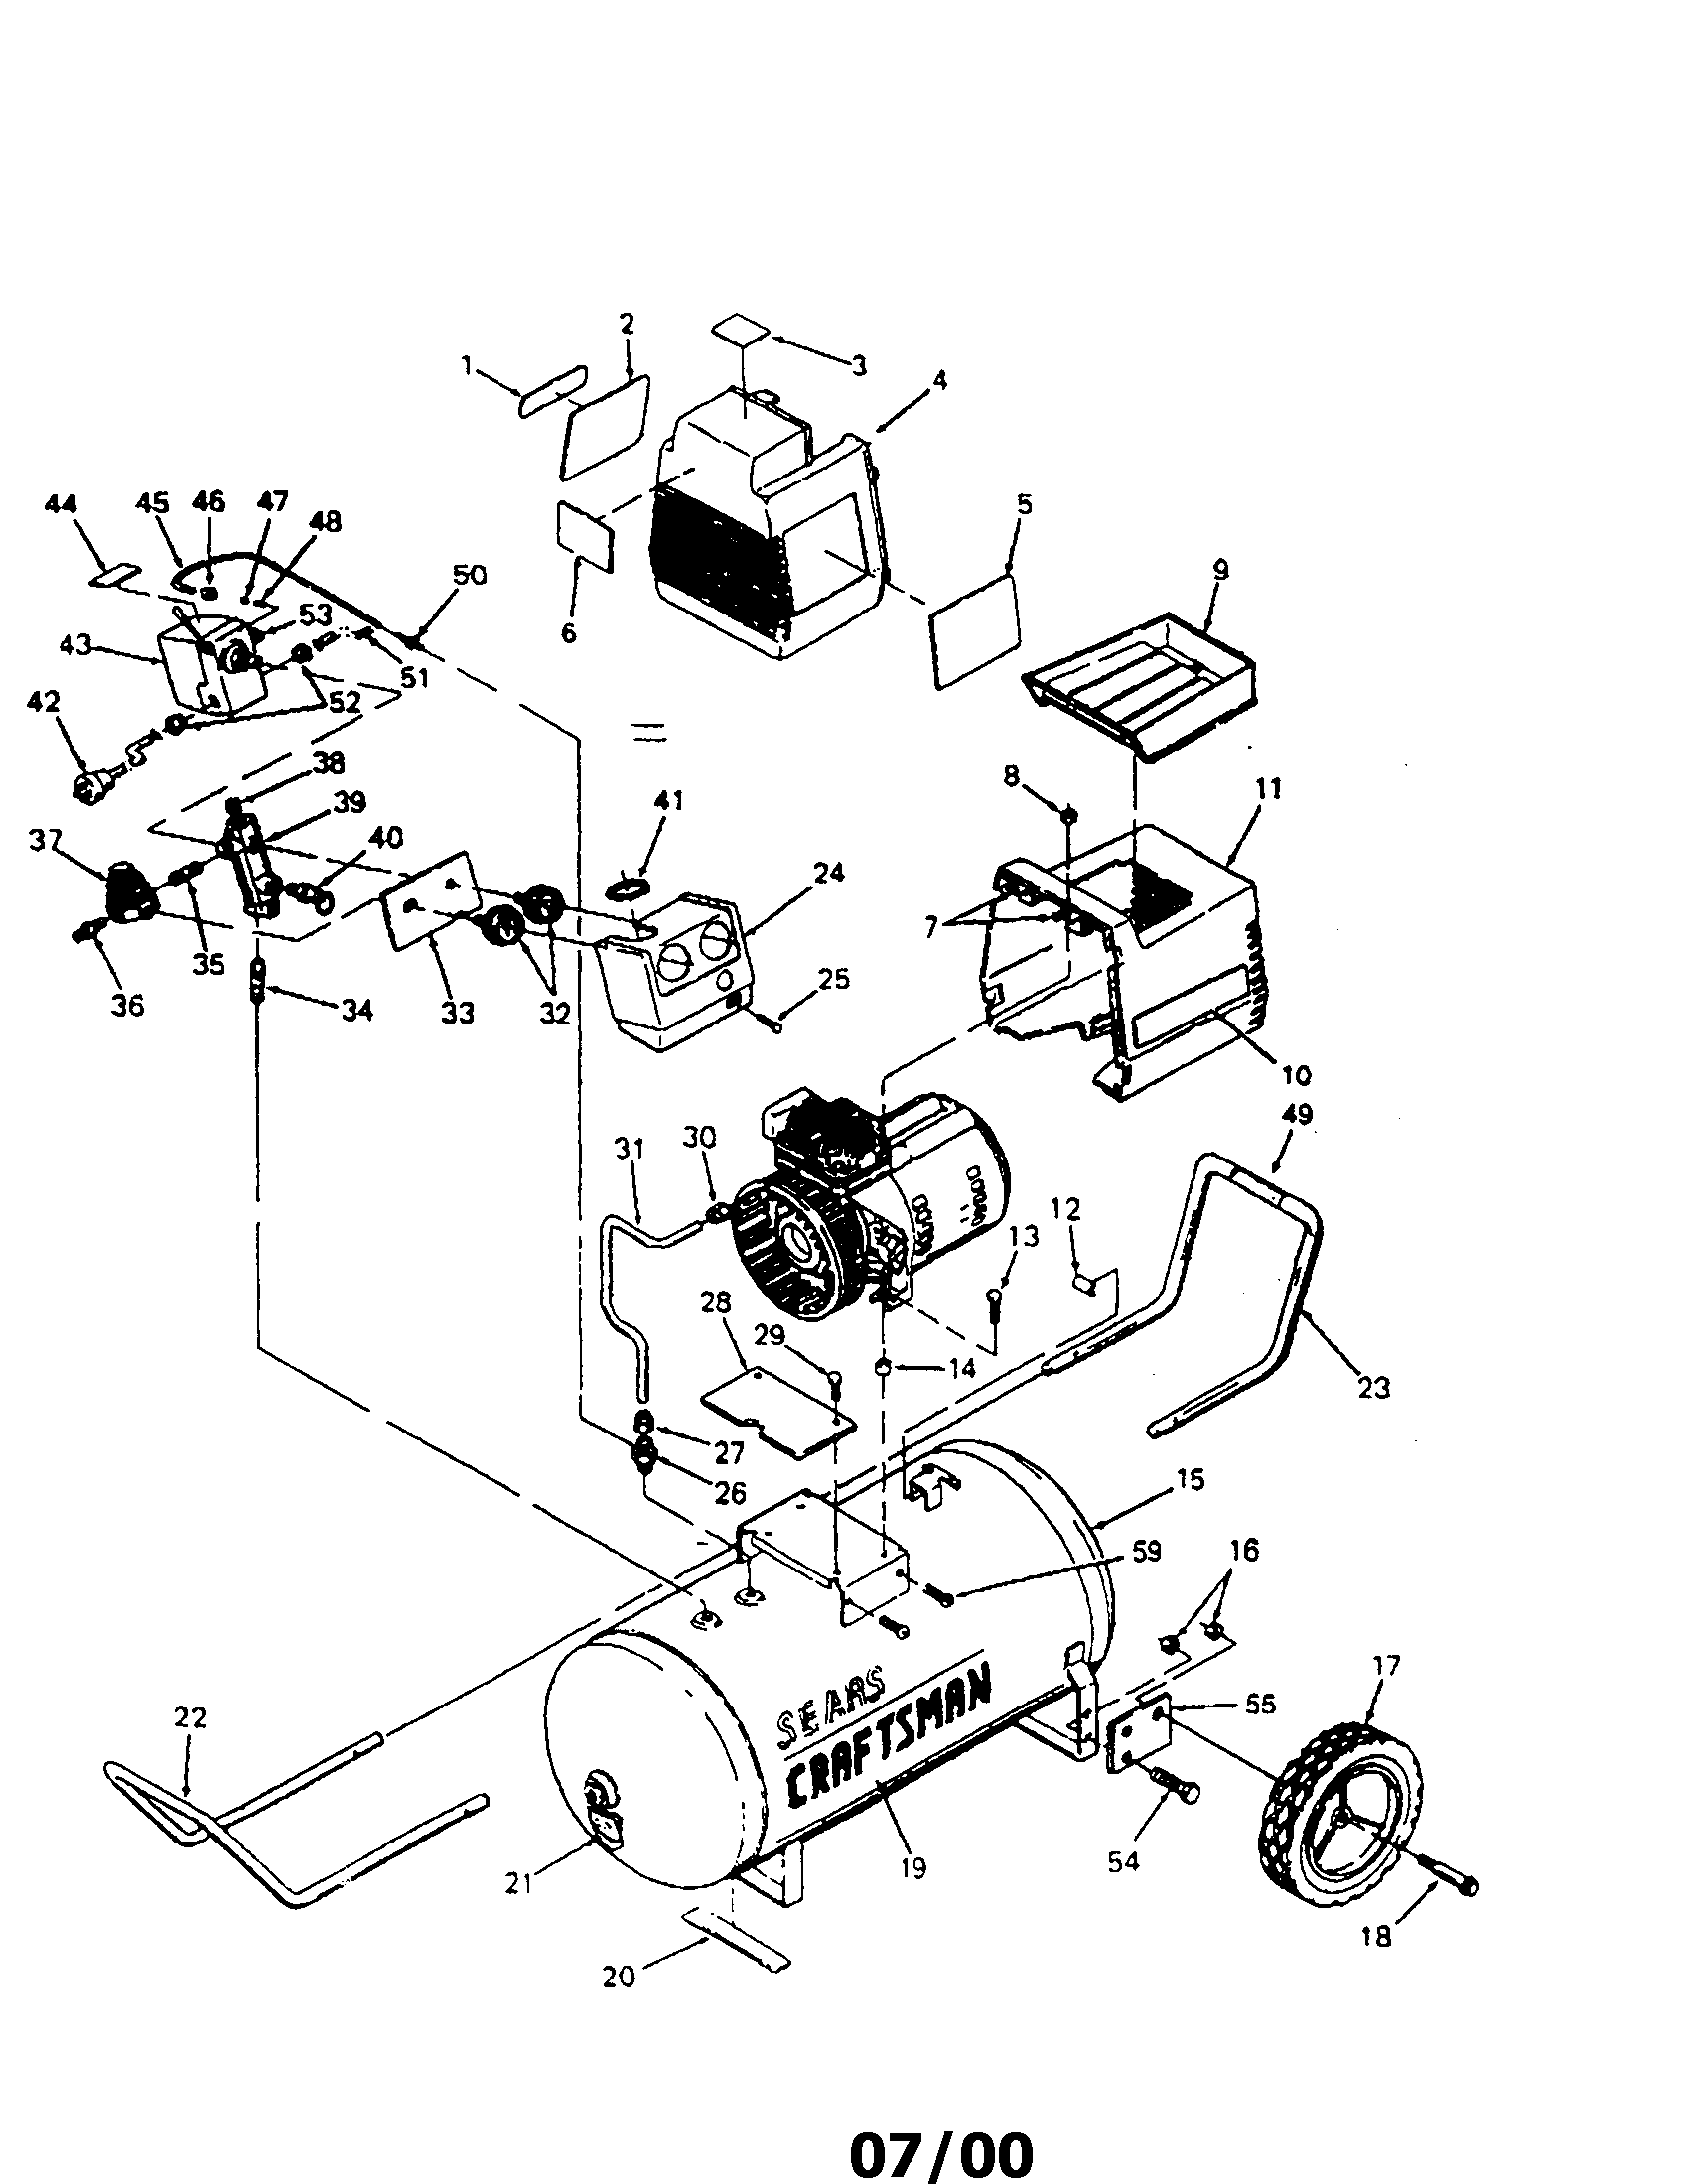 919.153231_craftsman_compressor_parts 919 153231 sears craftsman air compressor parts abac air compressor wiring diagram at n-0.co